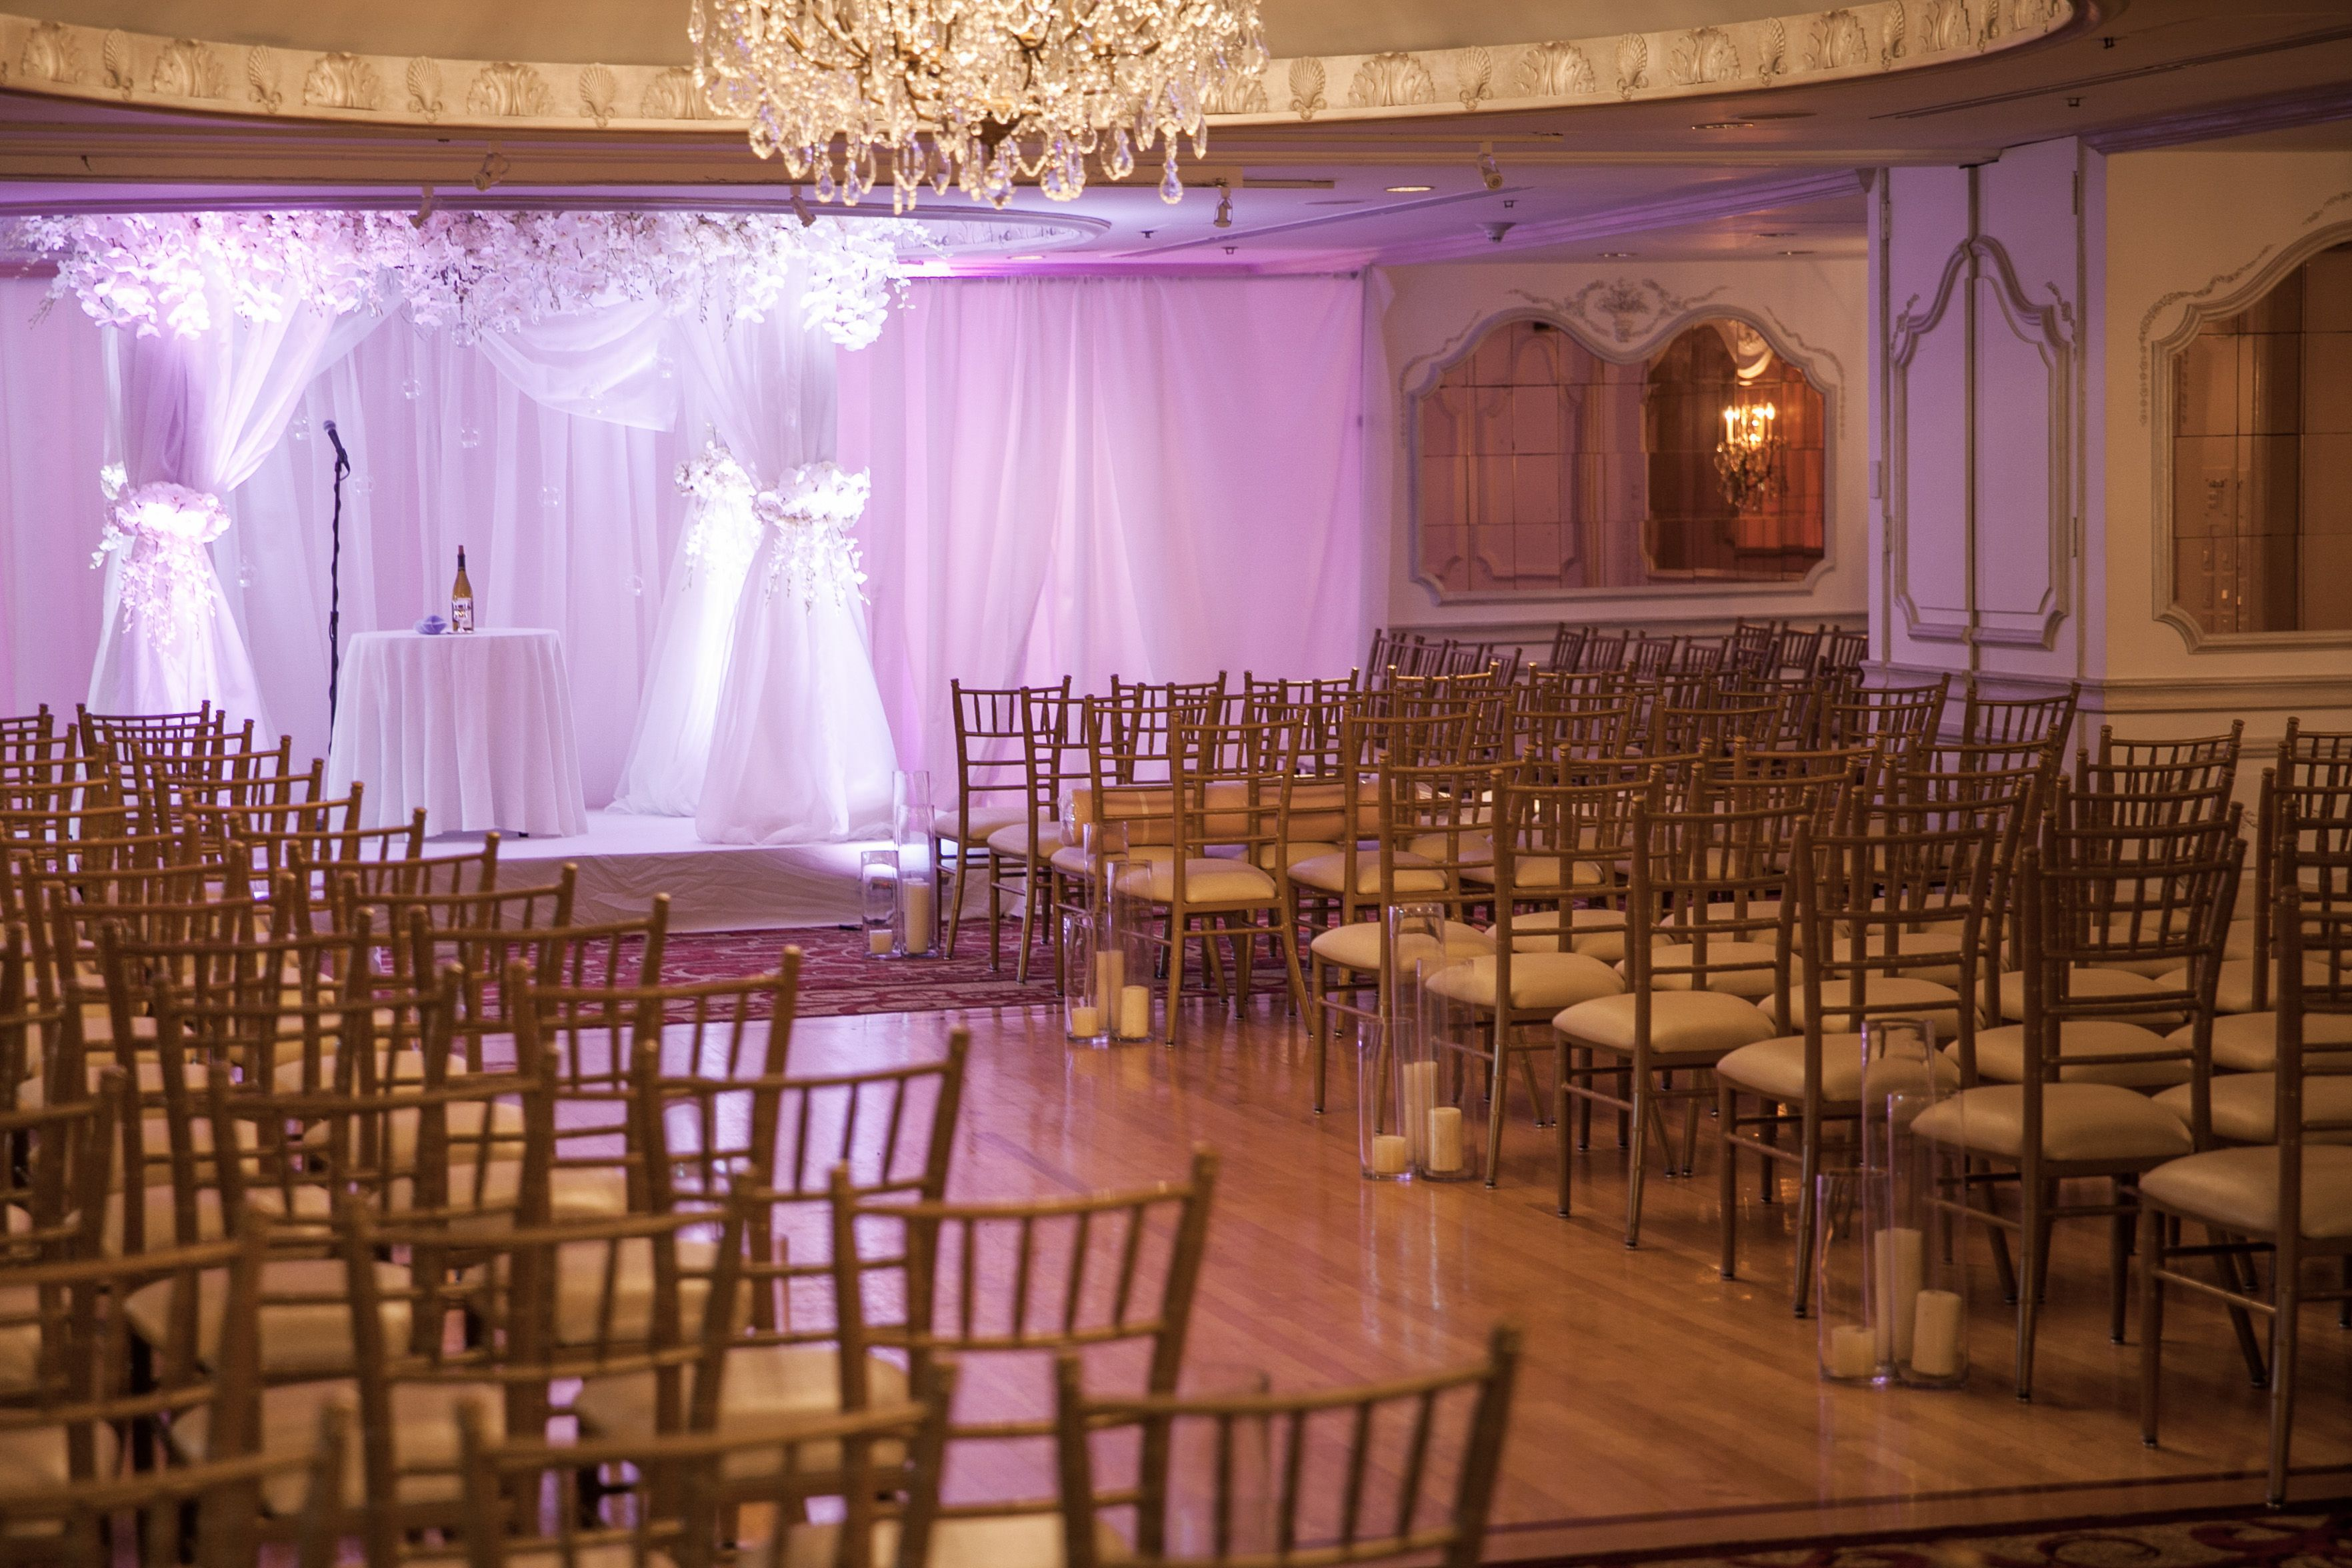 Wedding Ceremony In The Cotillion At The Garden City Hotel With